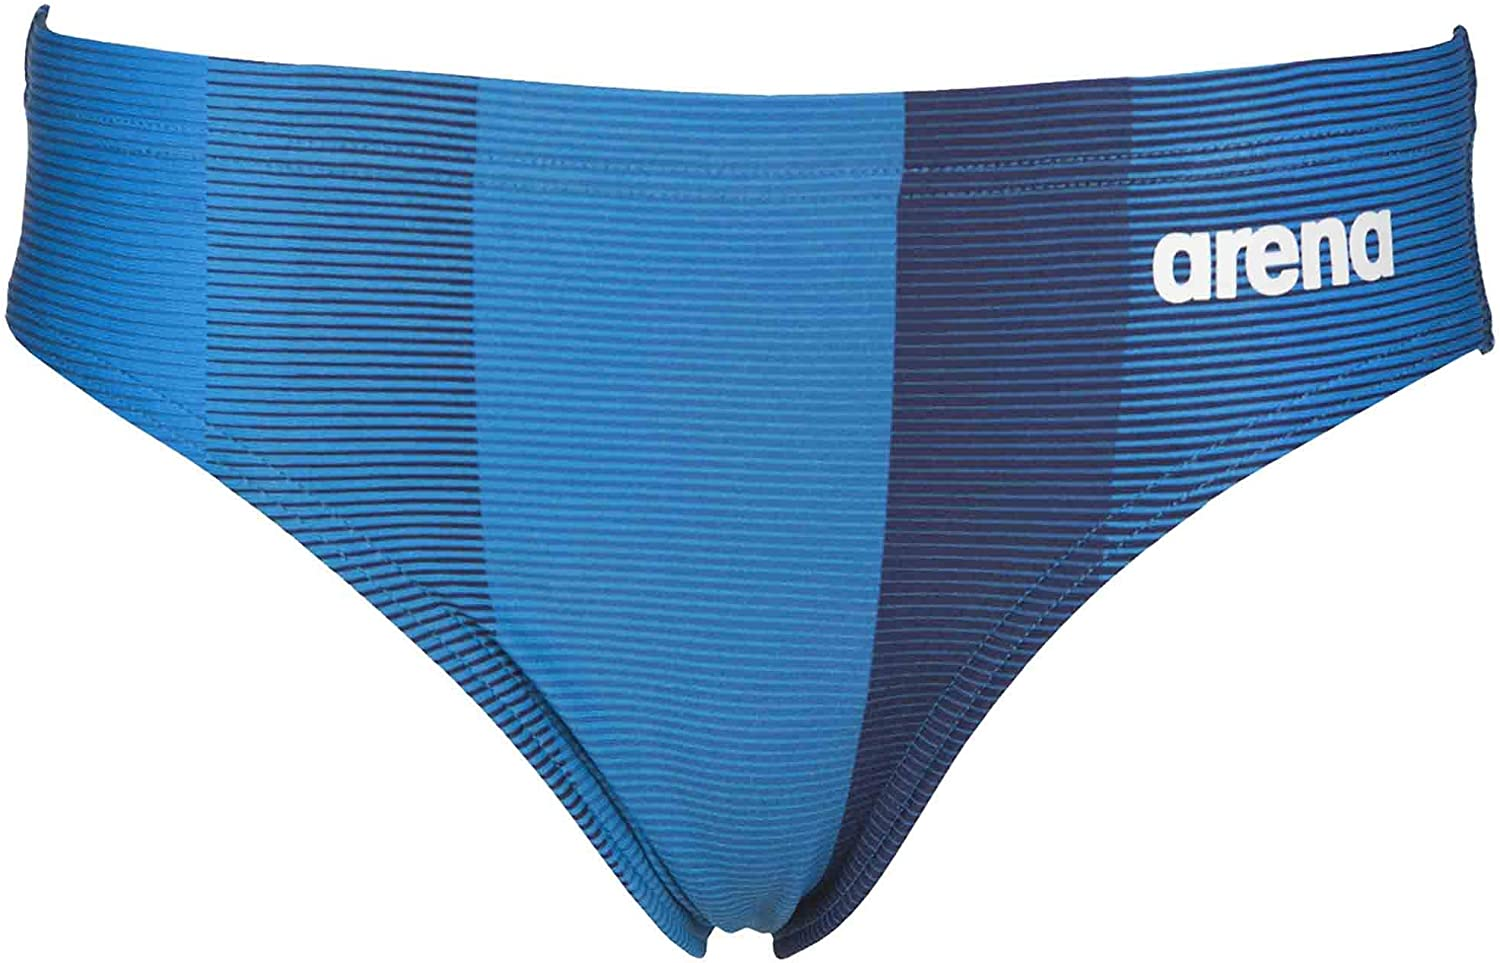 Arena Blended Stripe Youth Brief MaxLife